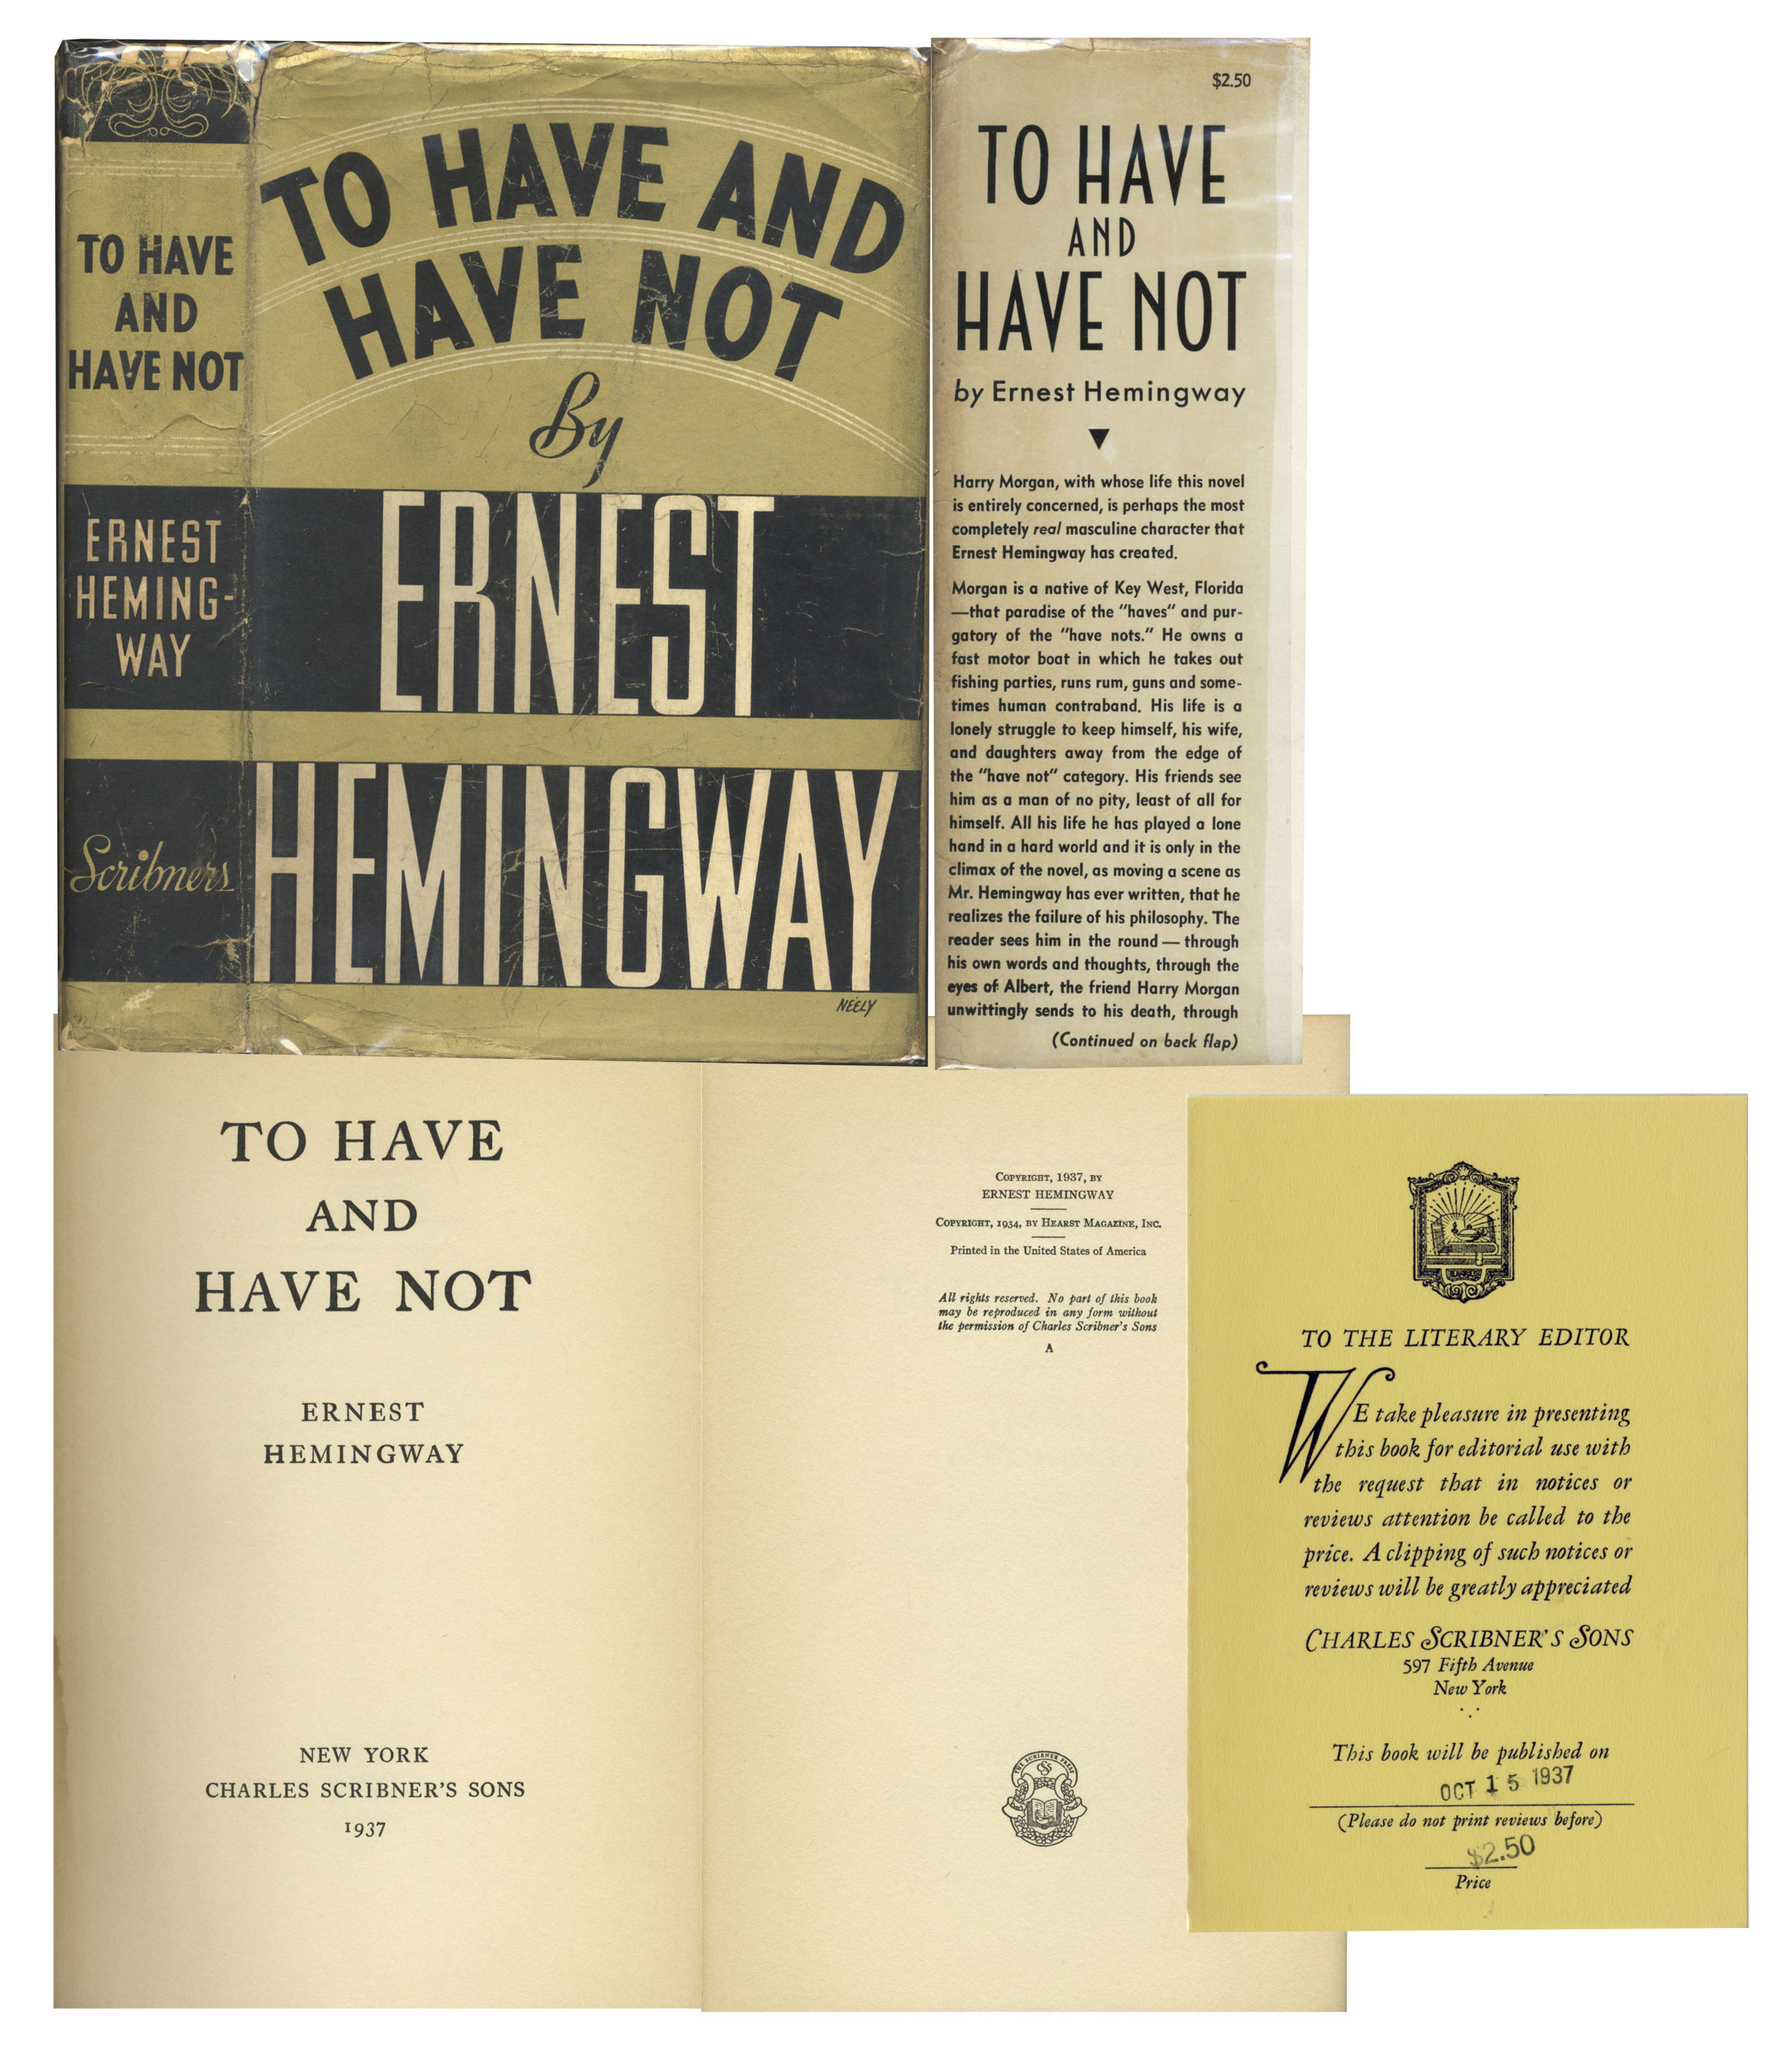 the unique writing styles of ernest hemingway captures the readers Ernest hemingway is known as one of the best writers of our time he has a unique writing style in which he manipulates the english language to use the minimum amount of words and maximize the impression on the reader.